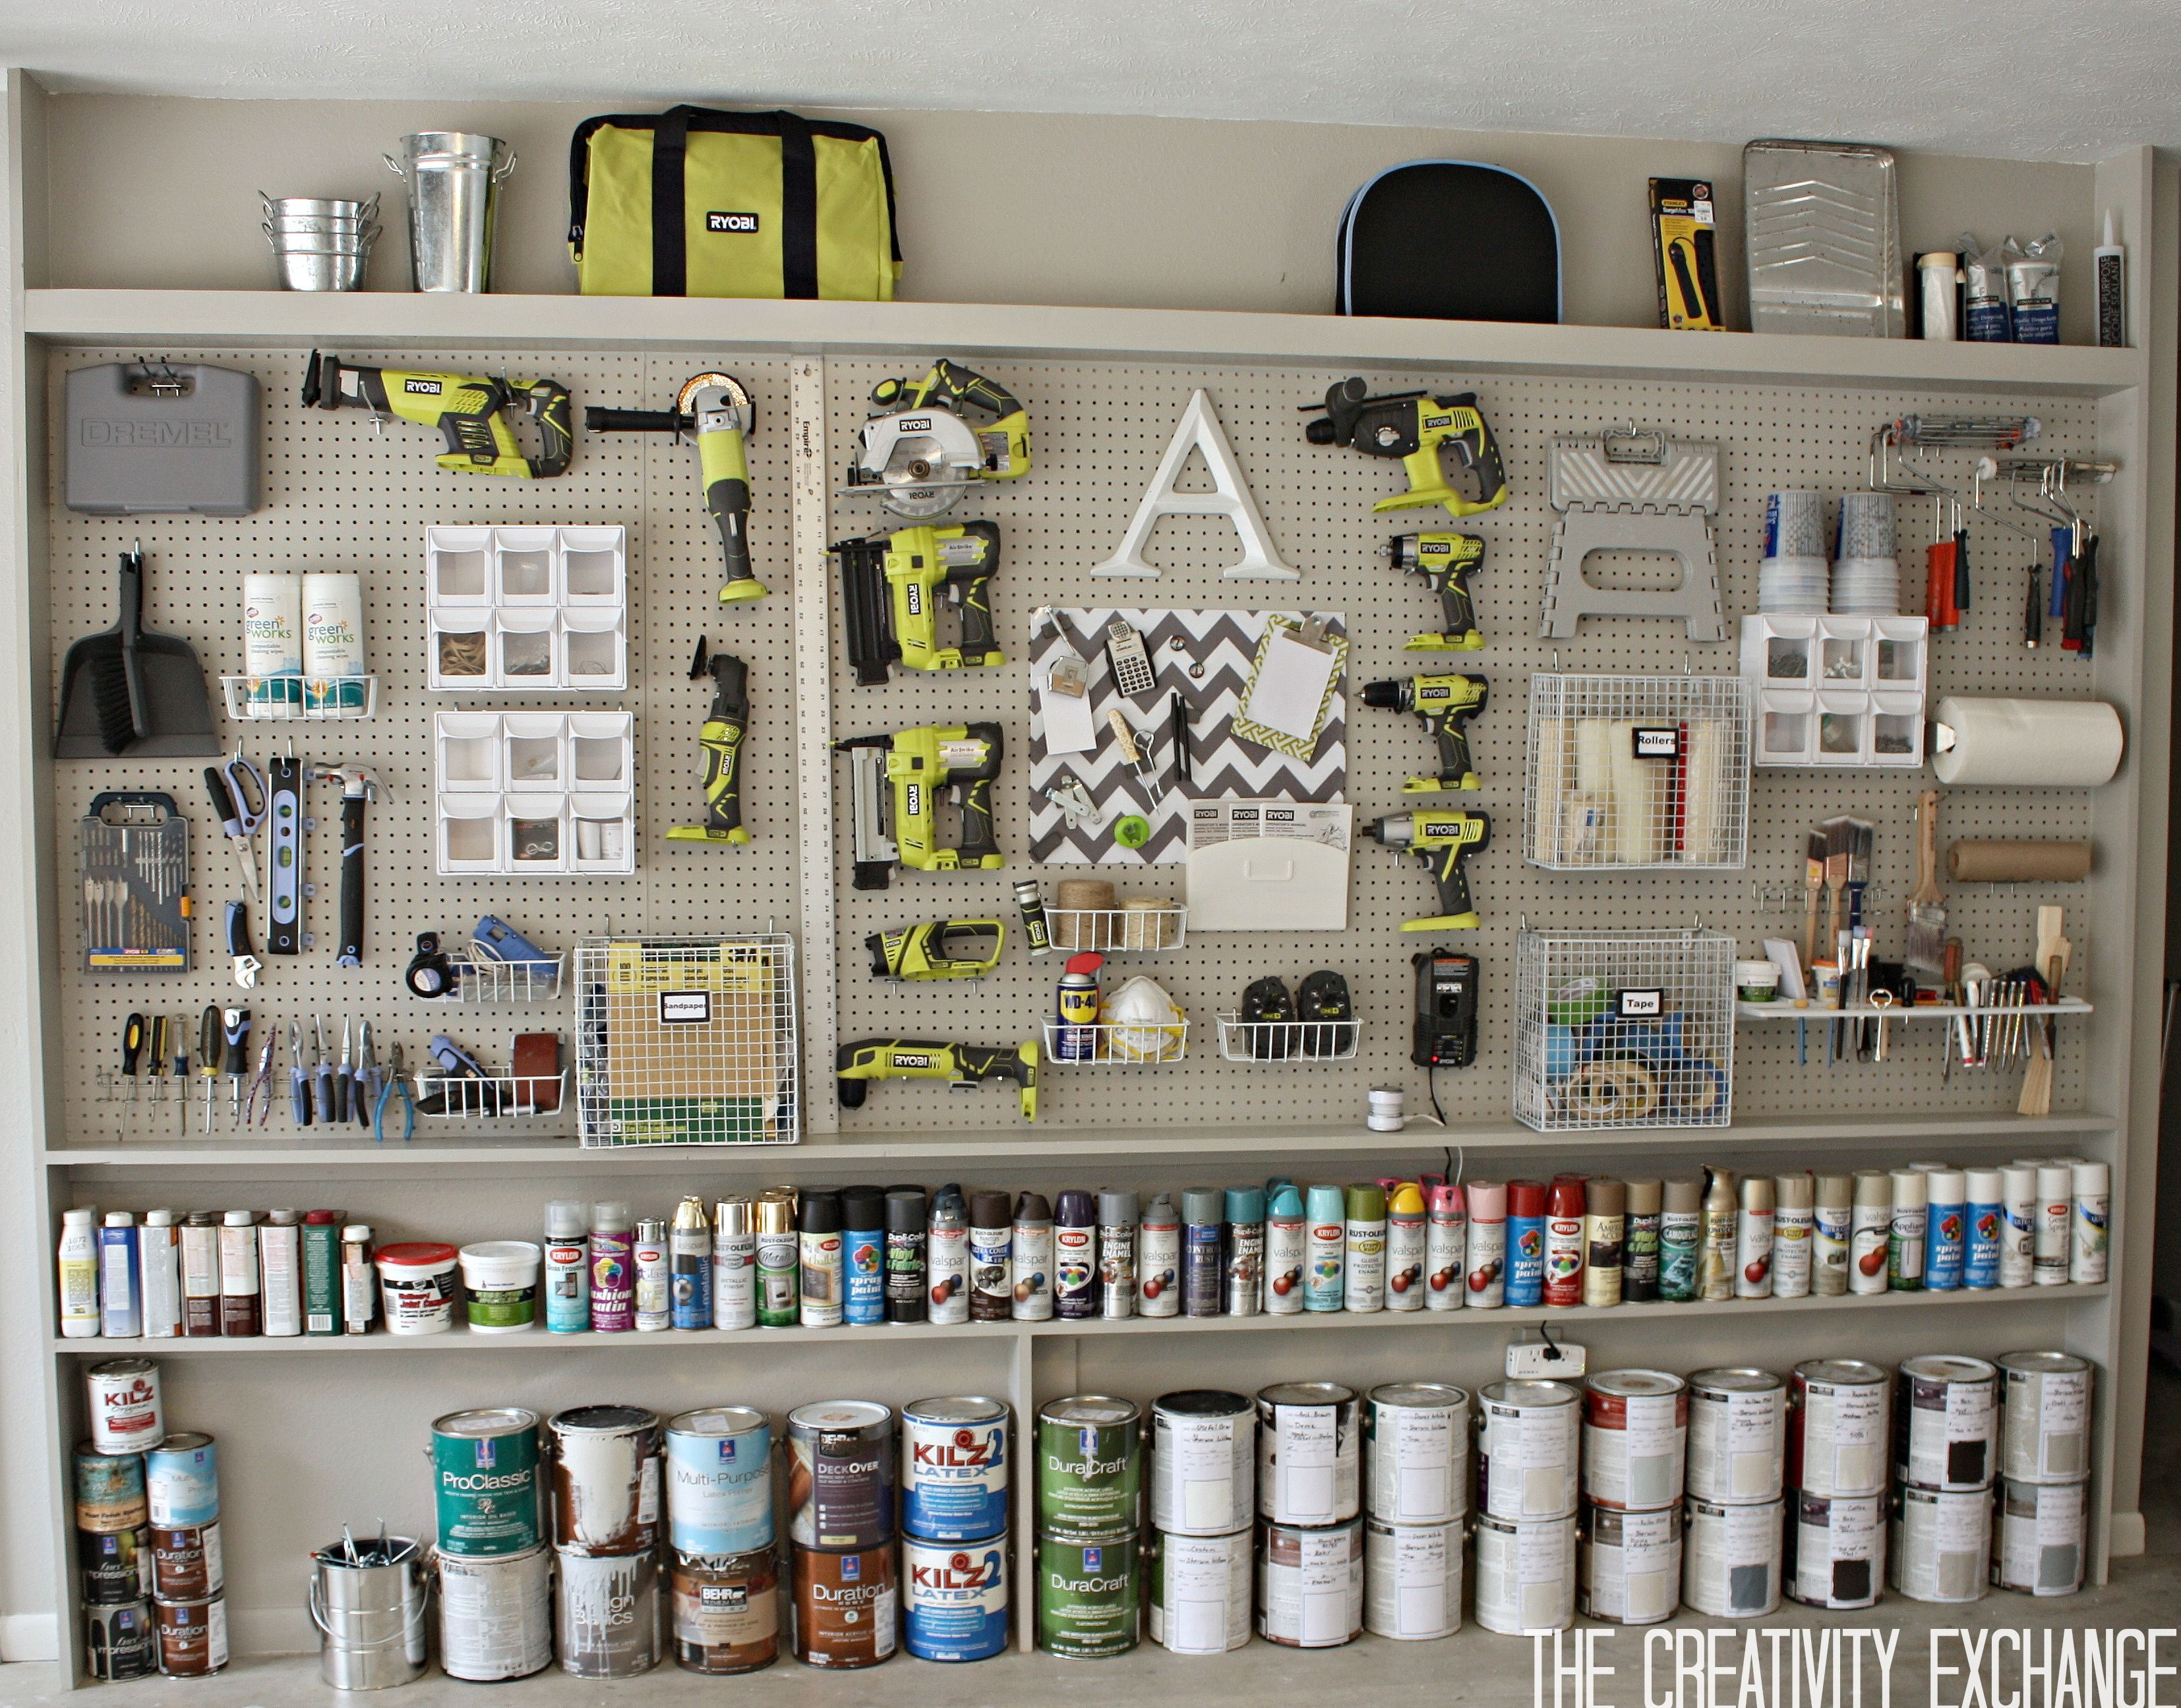 How to build an interior wall in the garage - Diy Garage Pegboard Storage Wall Cool Pegboard Storage Pieces The Creativity Exchange